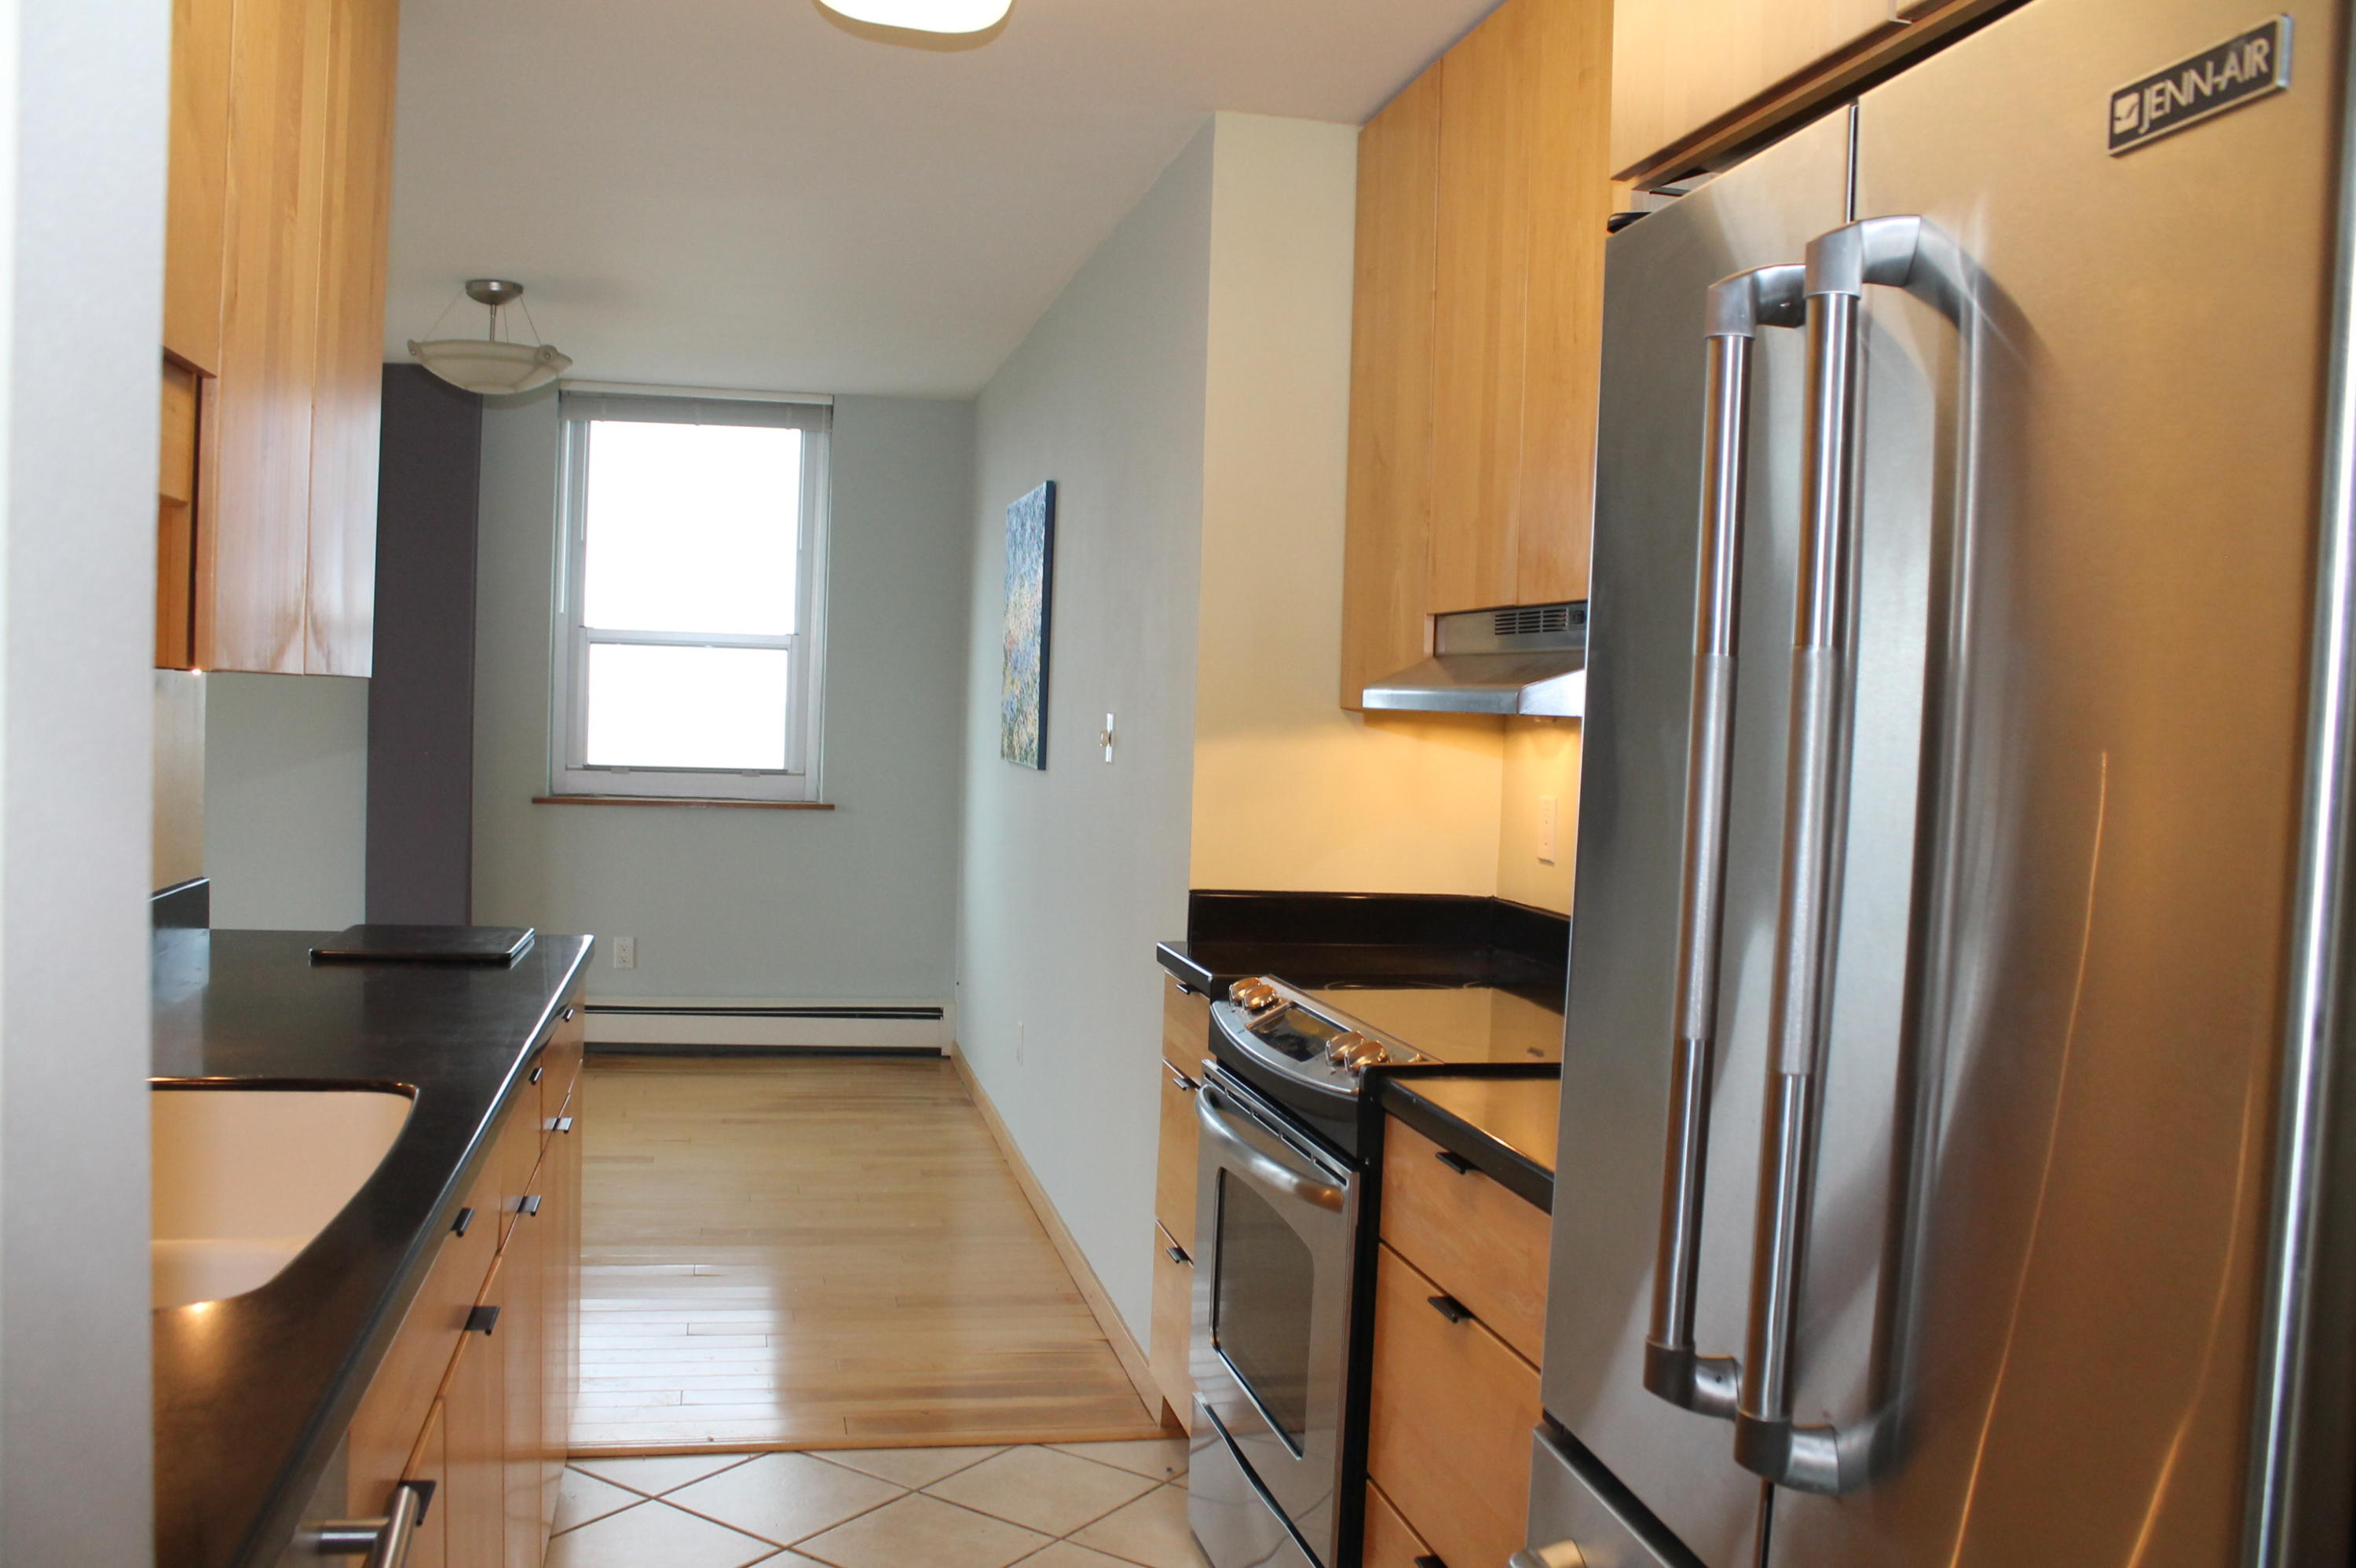 1707 Prospect Ave, Milwaukee, Wisconsin 53202, 2 Bedrooms Bedrooms, 4 Rooms Rooms,2 BathroomsBathrooms,Condominium,For Sale,Prospect Ave,1721430